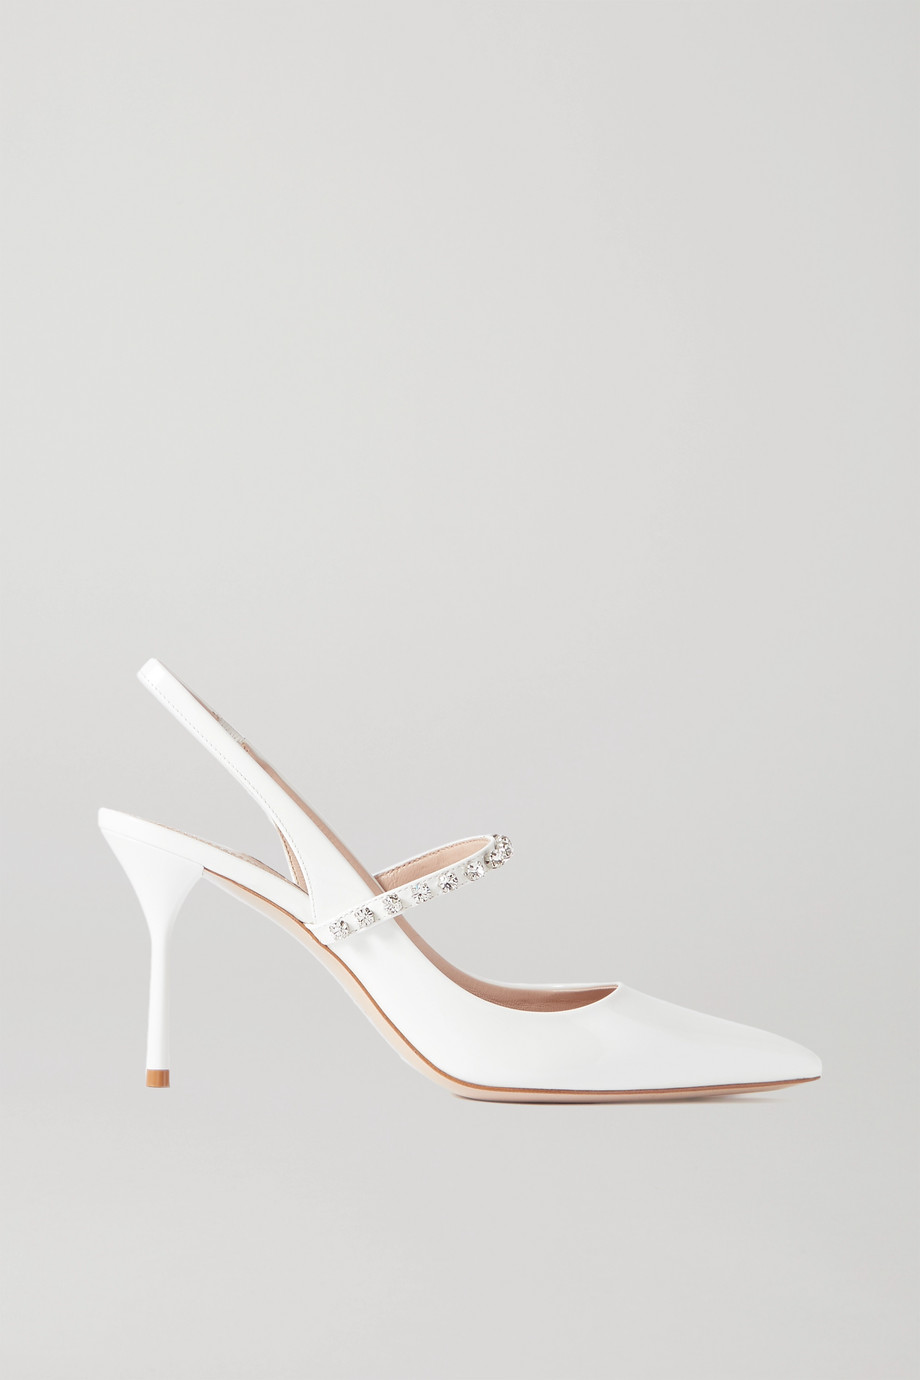 Miu Miu Crystal-embellished patent-leather slingback pumps